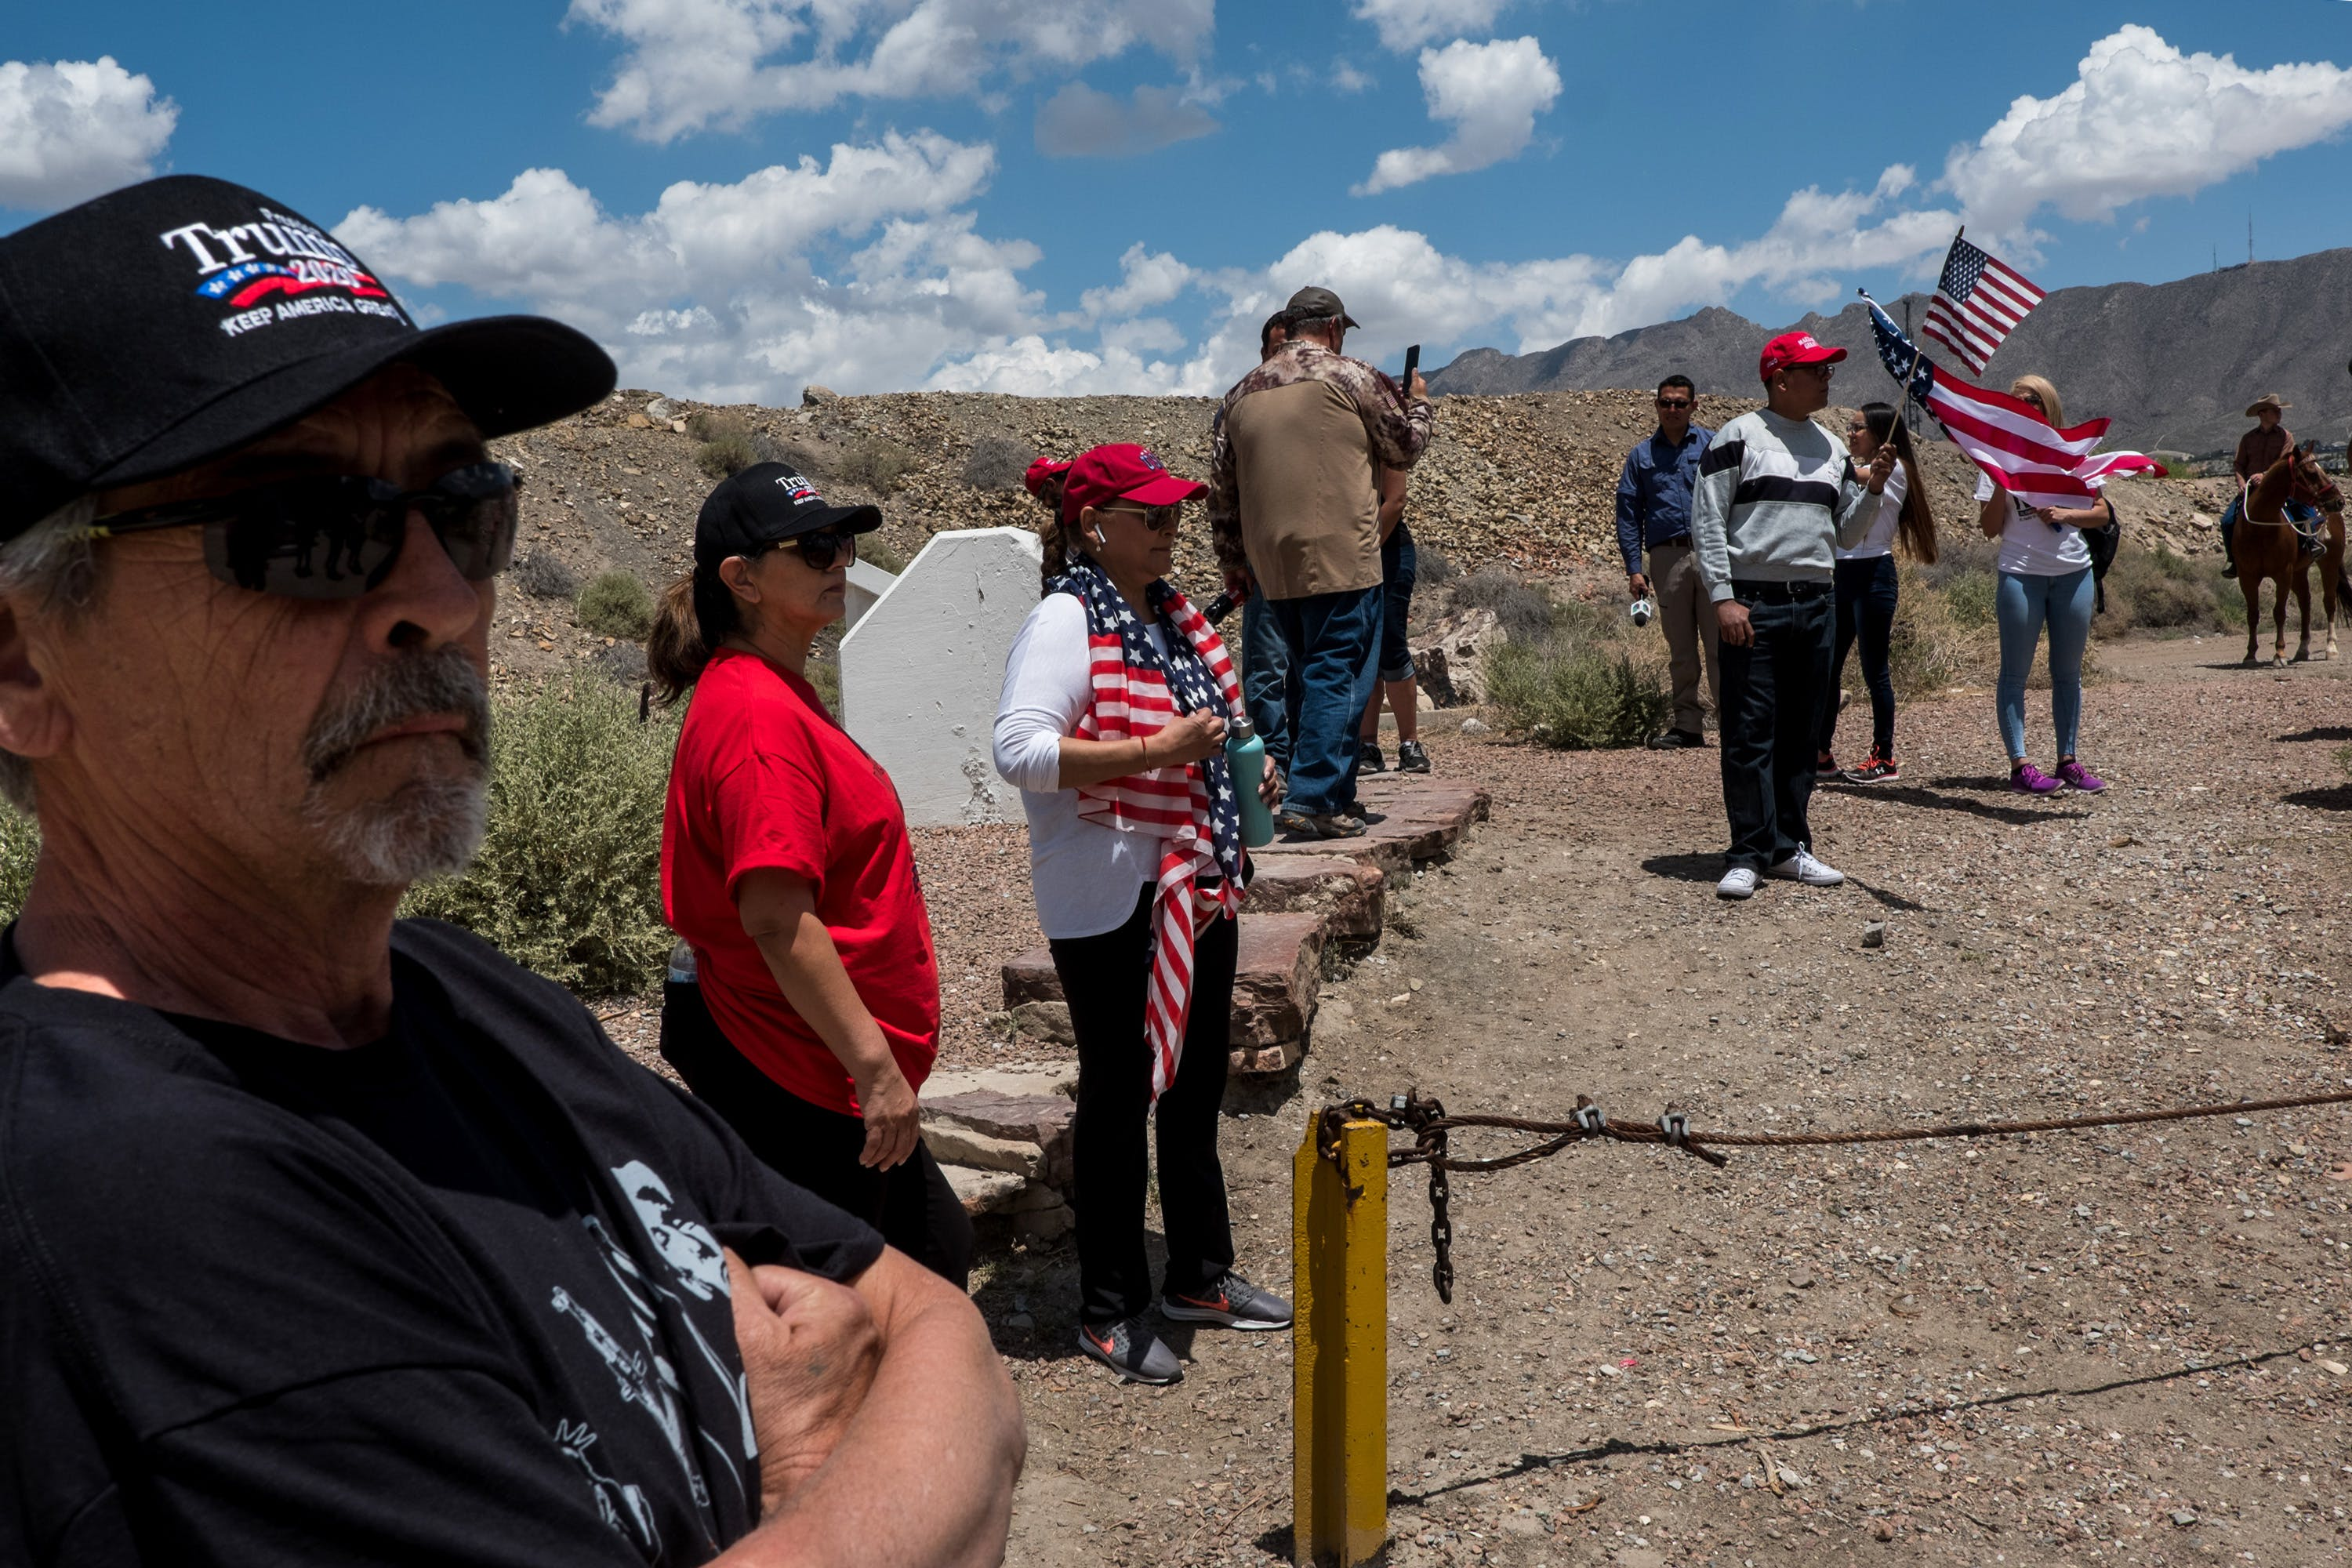 Sam Esquivel, left, Nancy Esquivel and Jacqueline Torres gather near Monument One at the U.S.-México border on the outskirts of Sunland Park, New Mexico, Saturday, May 11, 2019. (Joel Angel Juárez for The Intercept)